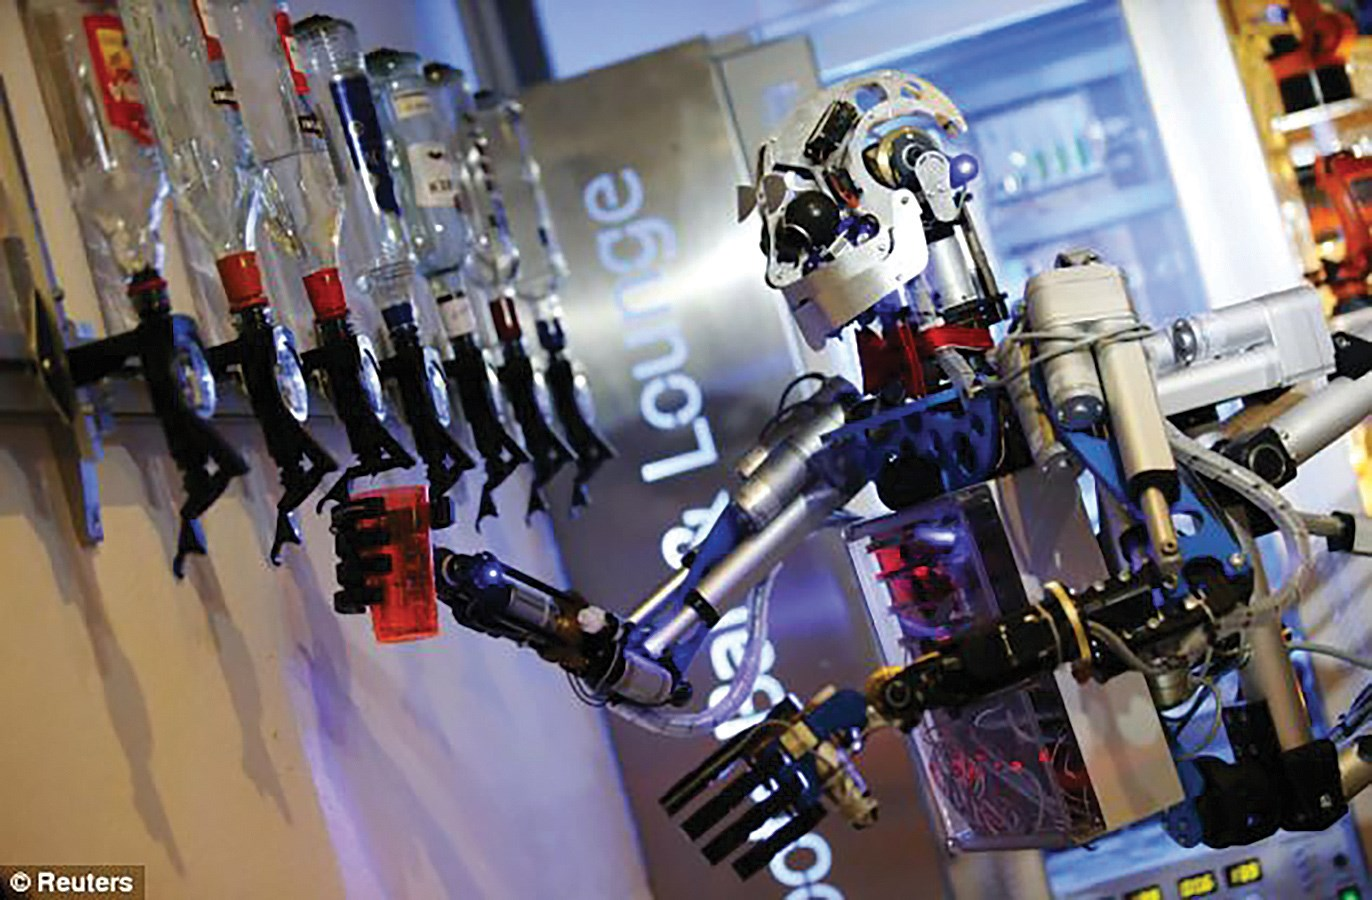 A robot tends bar in Germany